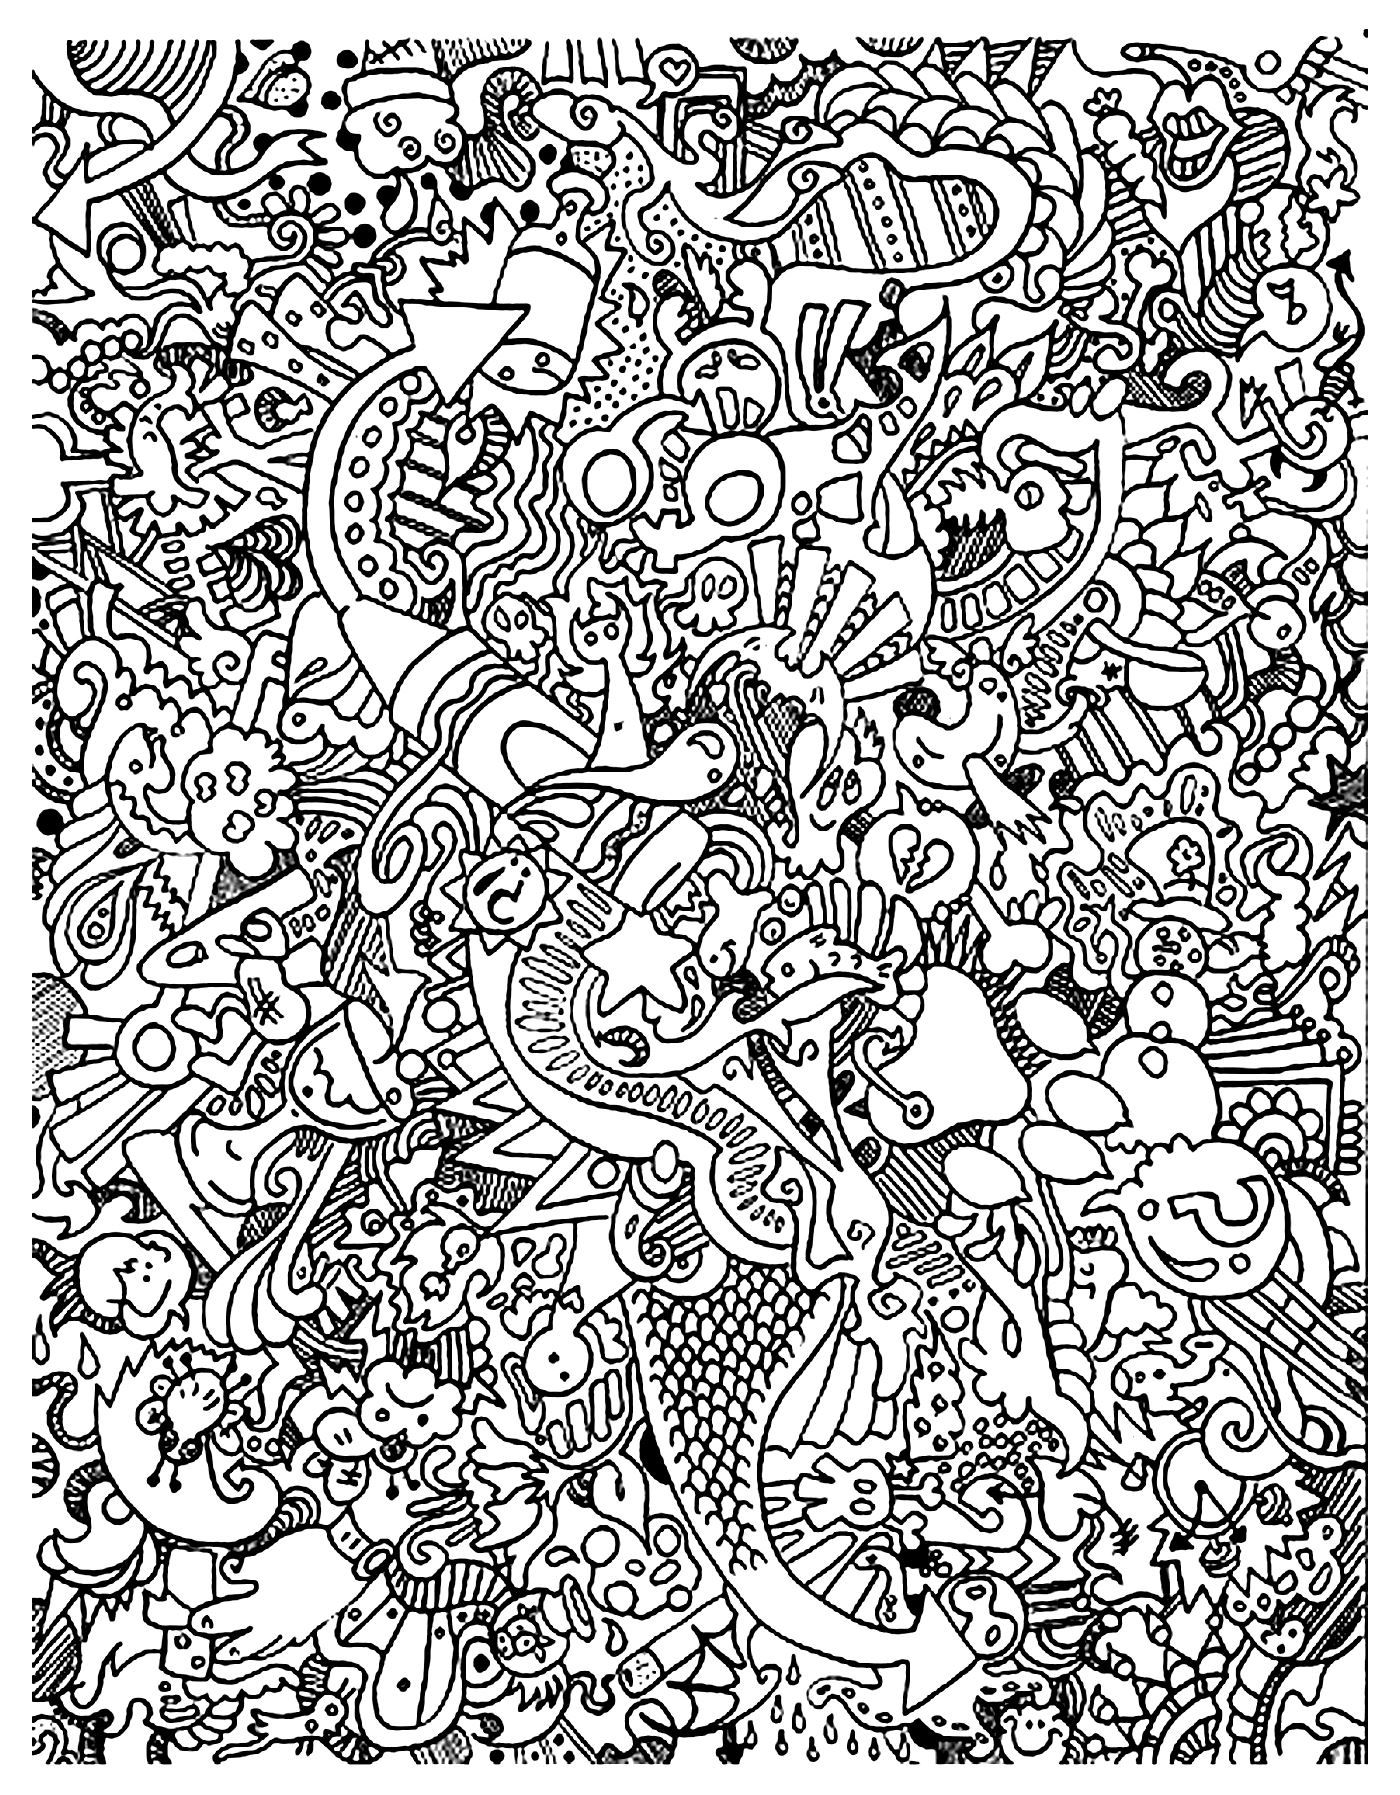 Free coloring page coloring doodle art doodling 18 very for Free doodle art coloring pages